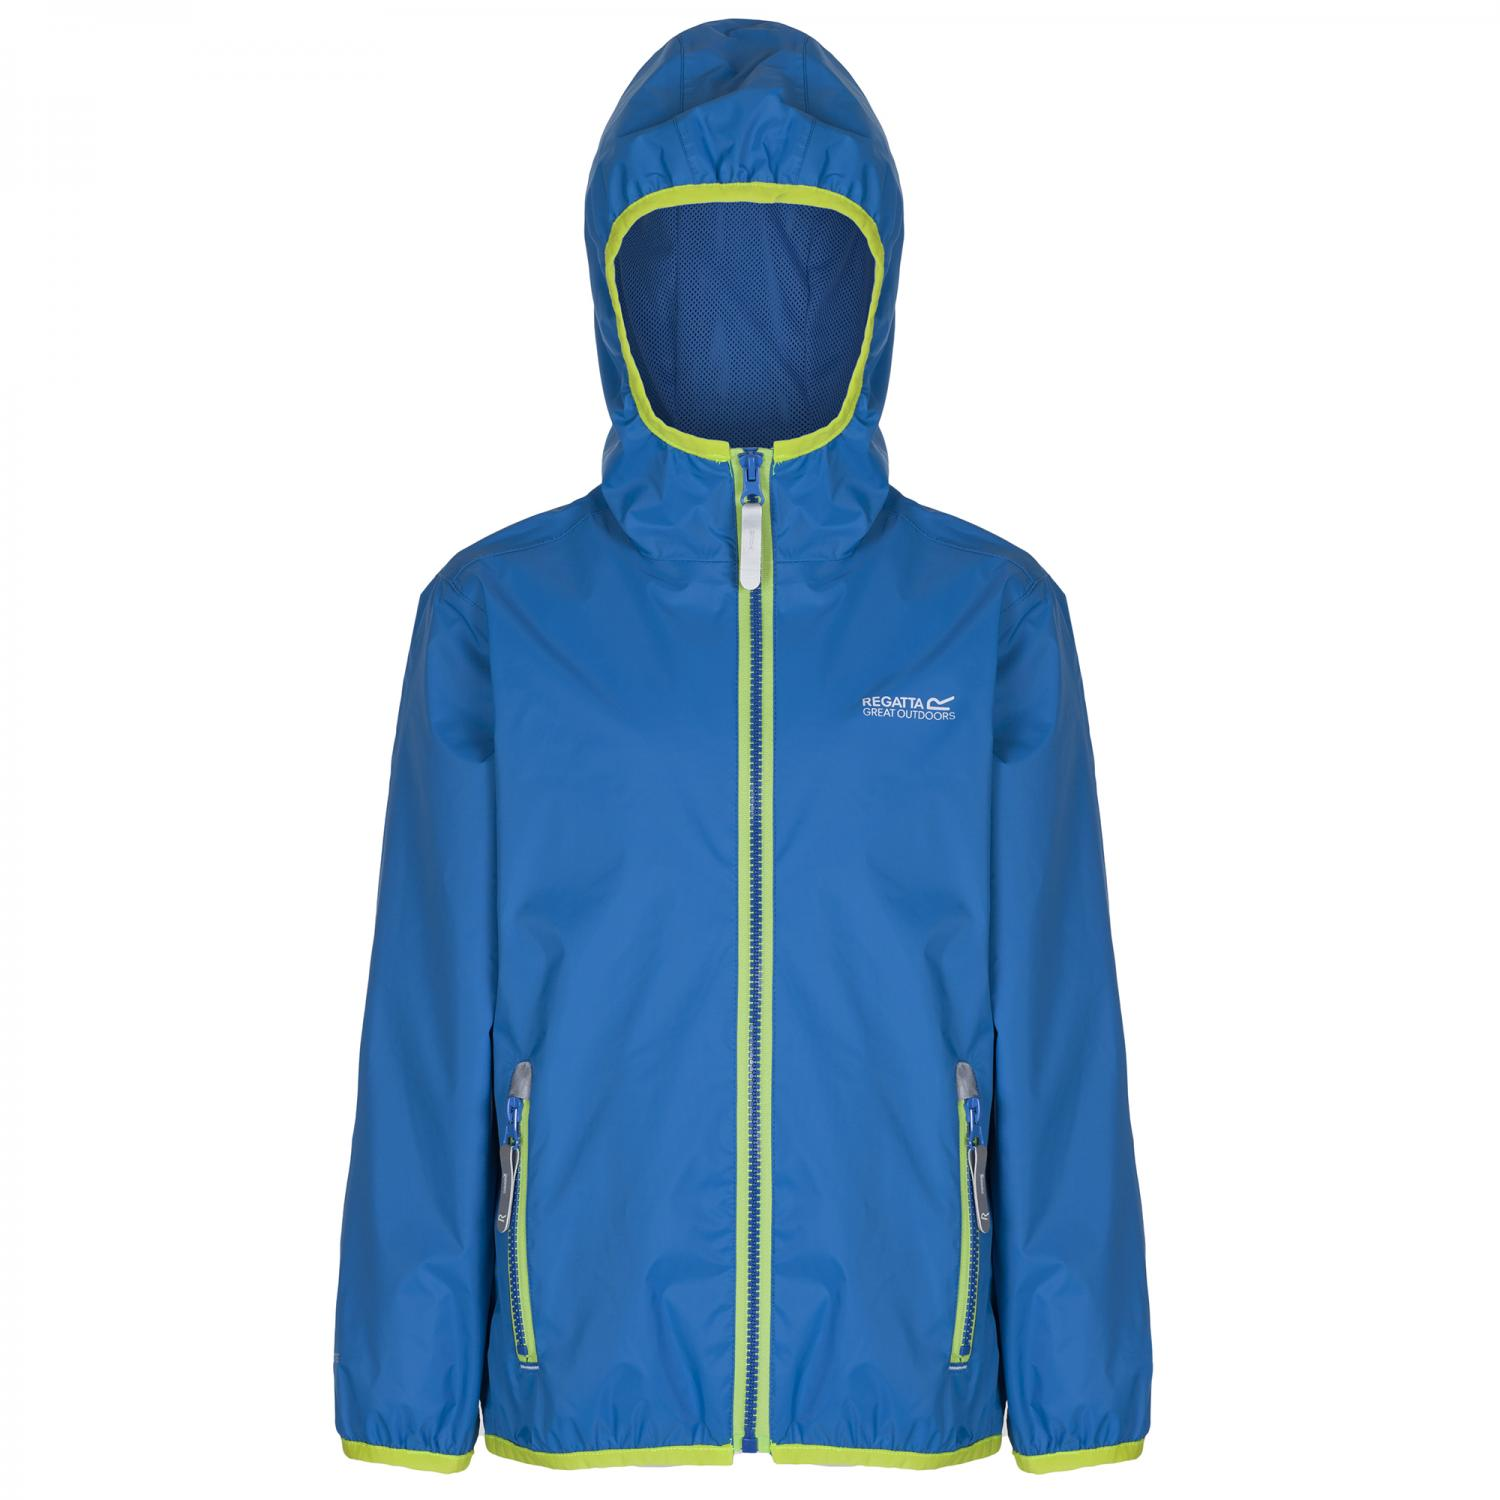 Boys Waterproof Jackets & Winter Coats | Regatta - Great Outdoors